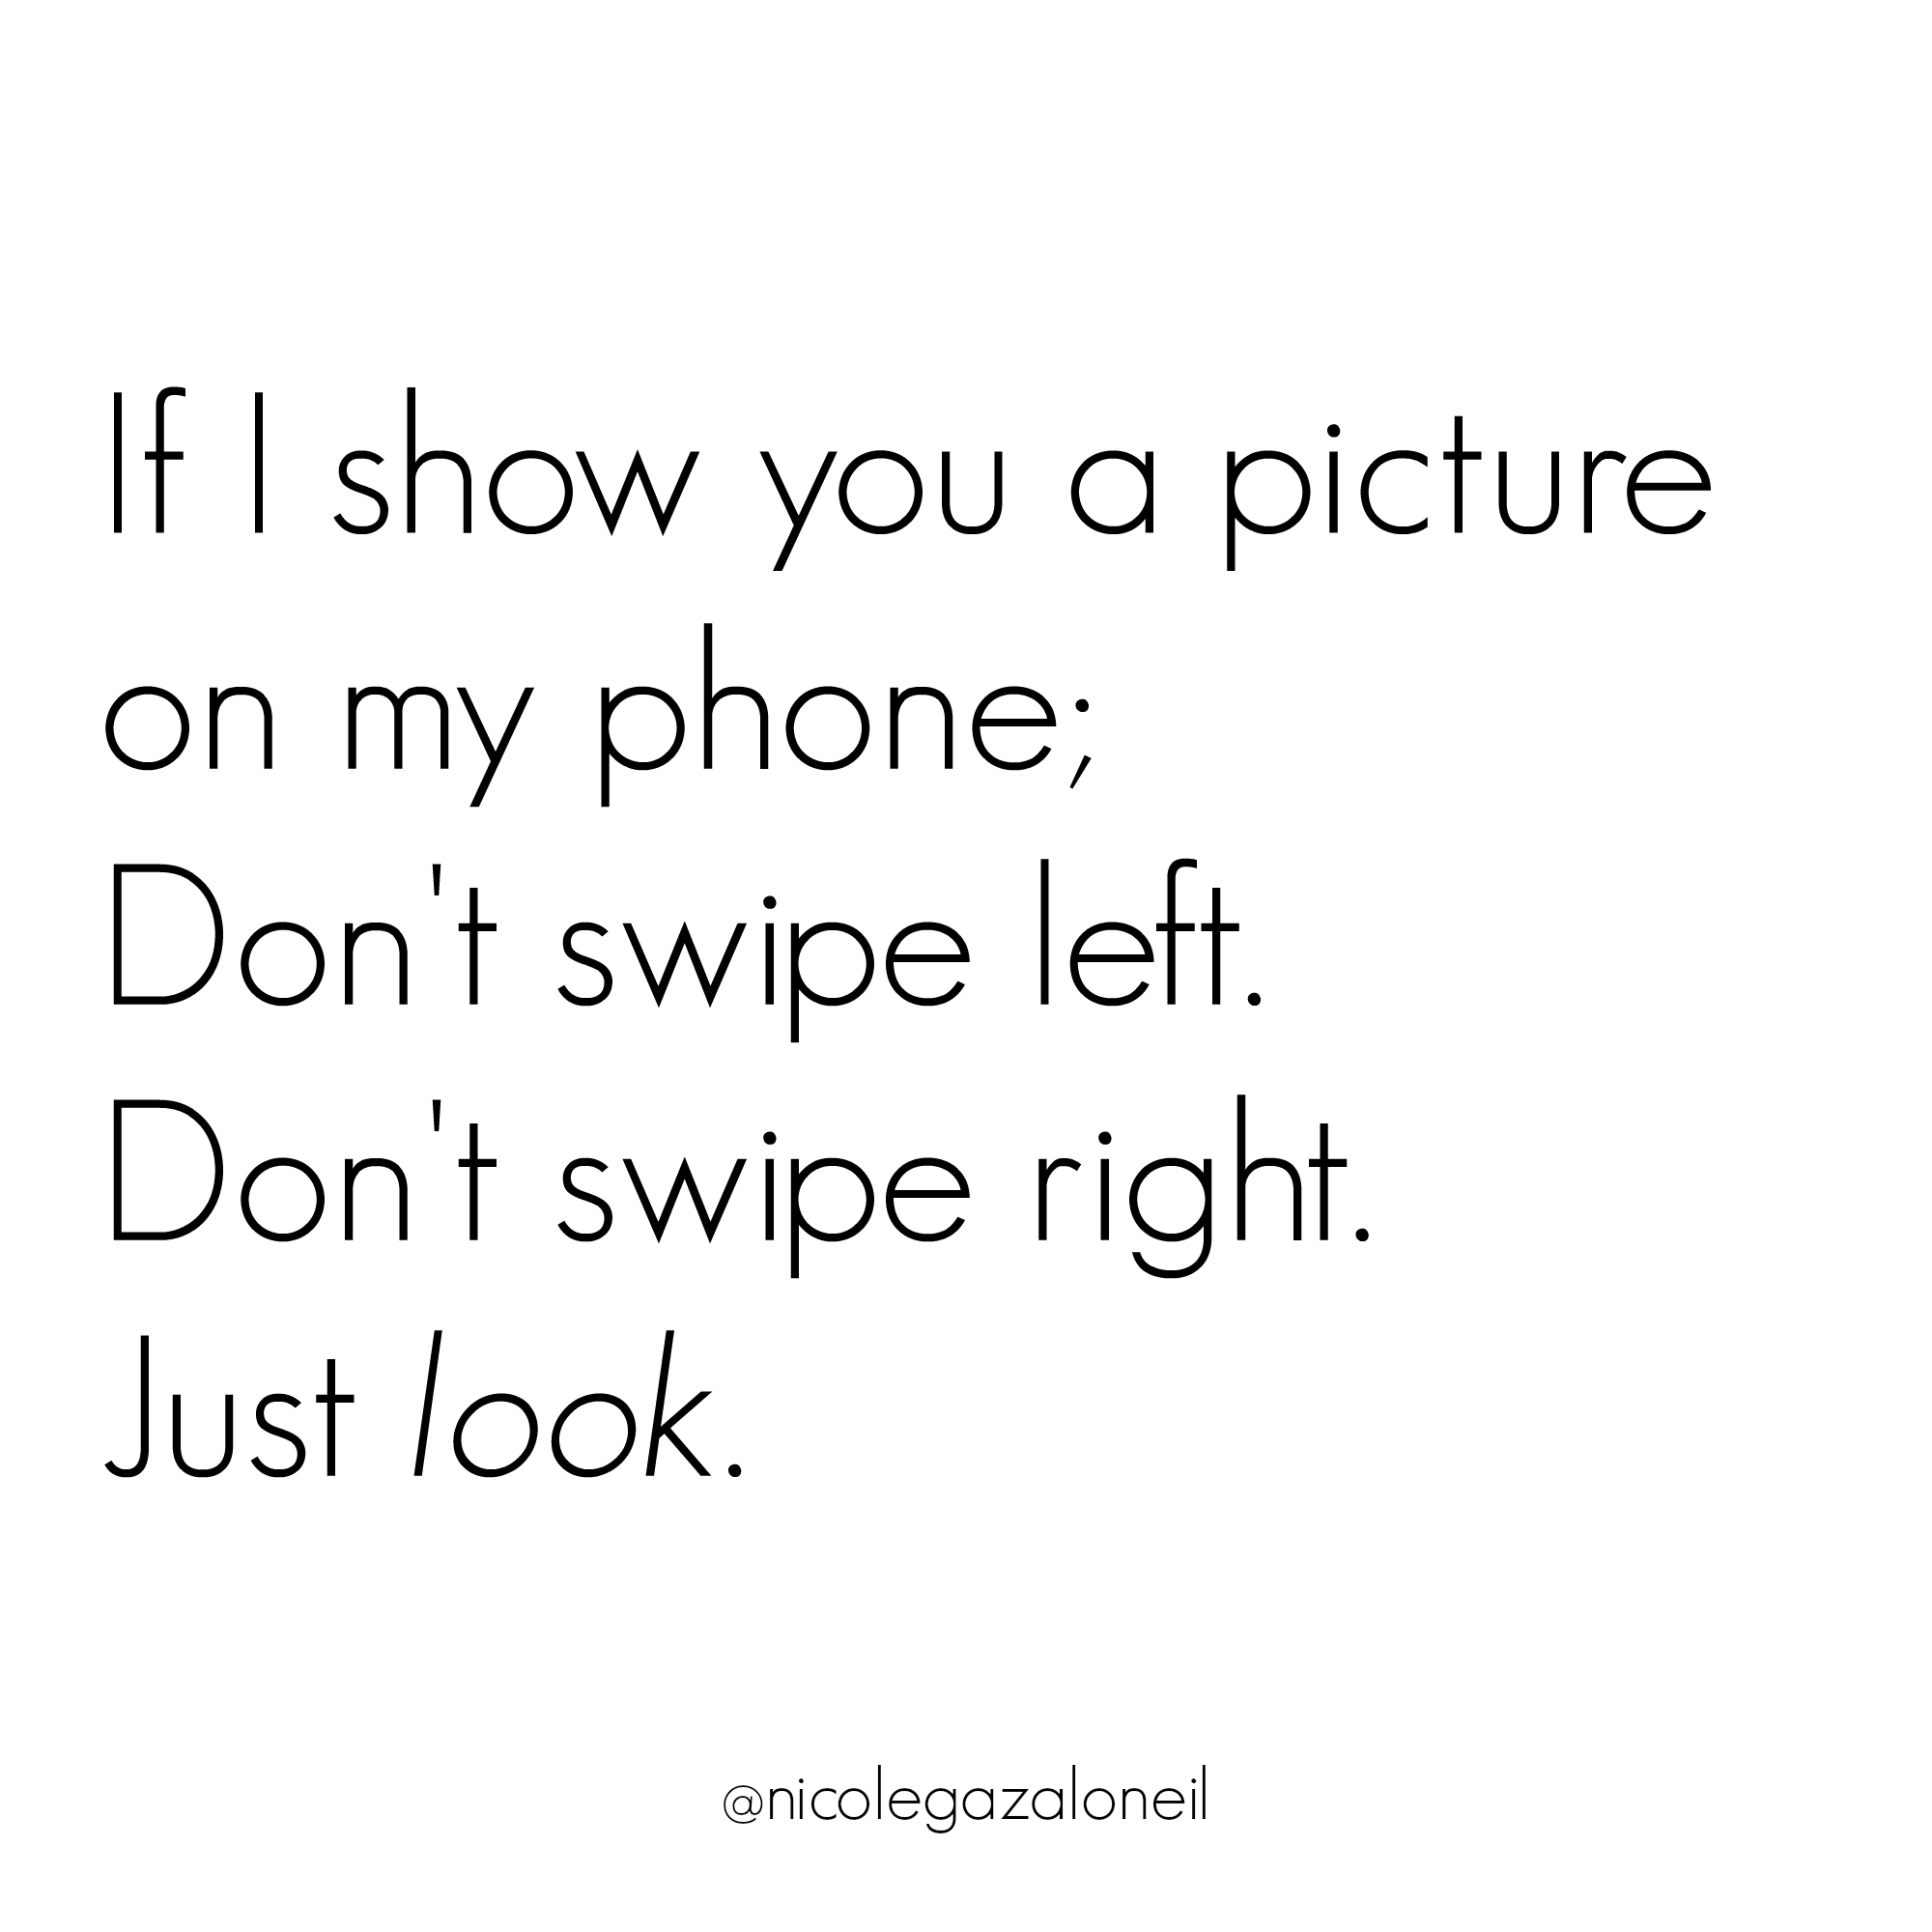 If I show you a picture on my phone don't swipe .jpg